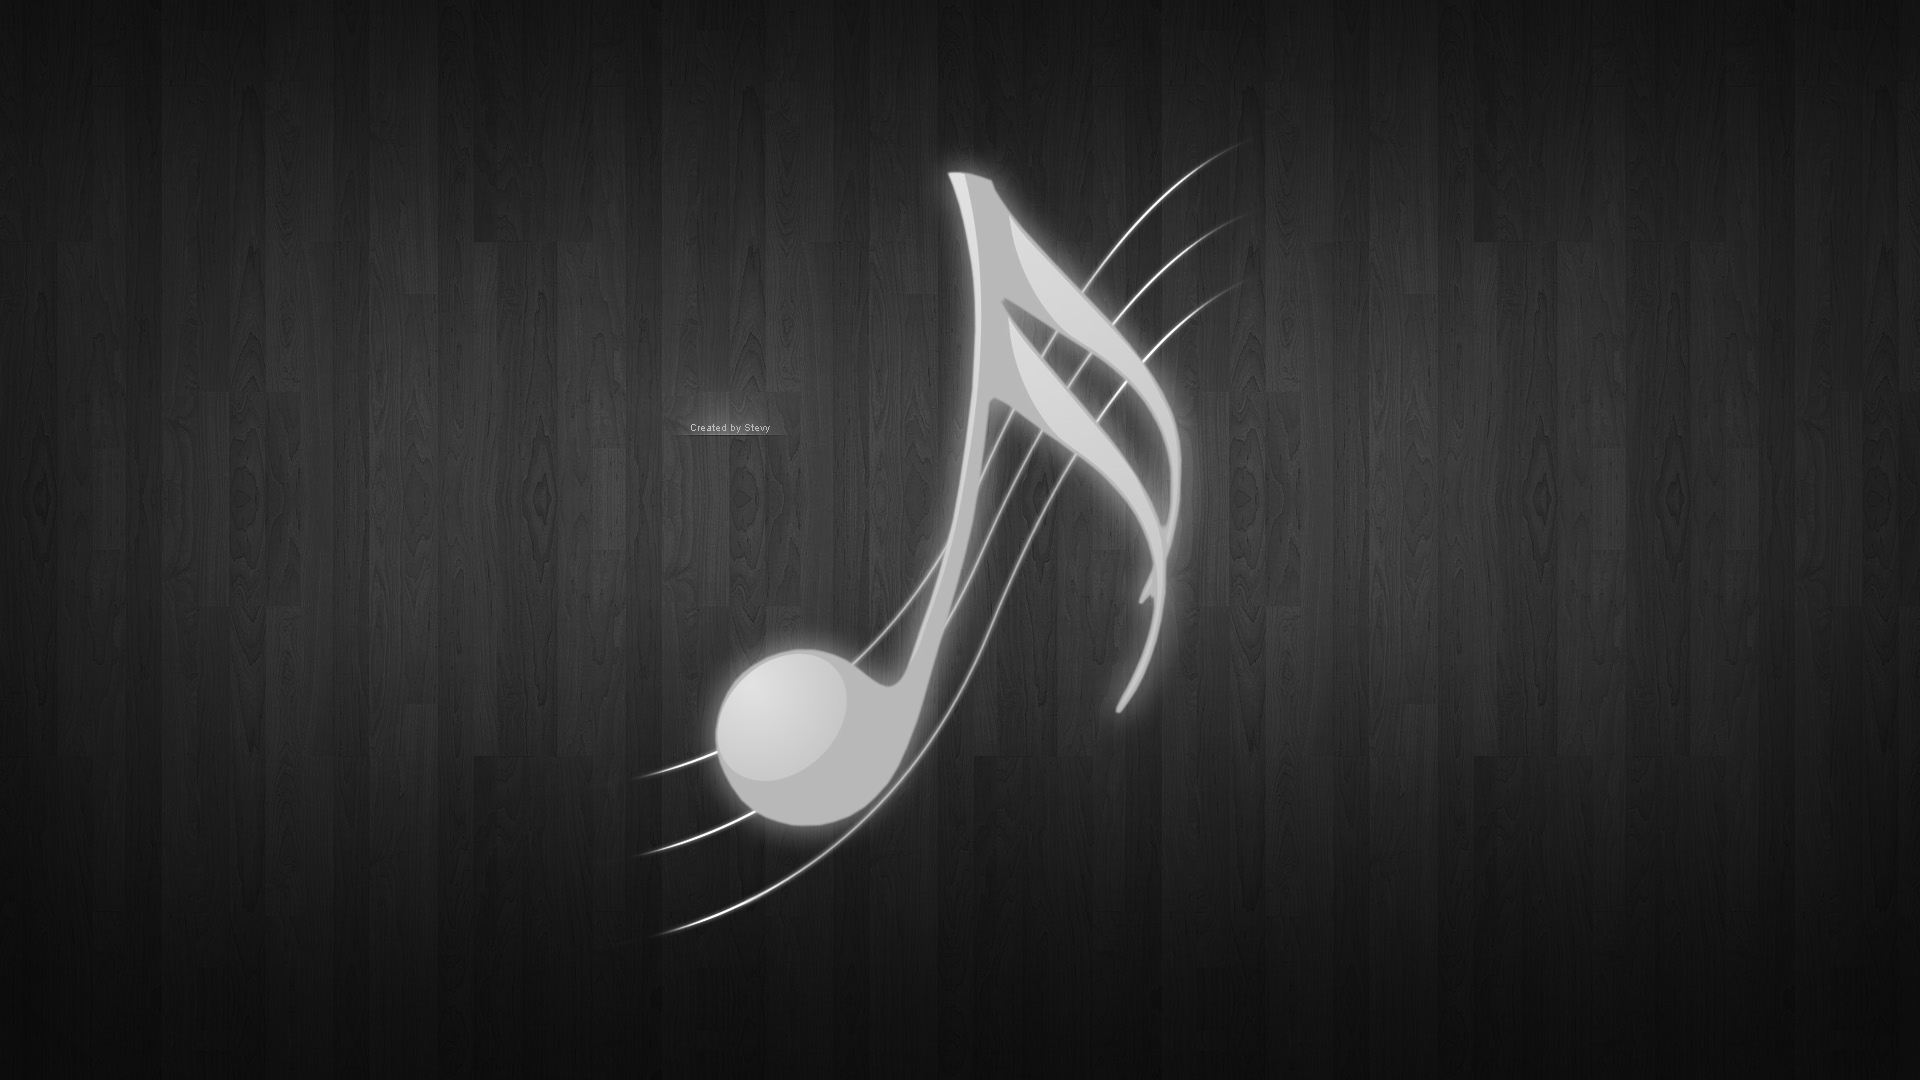 Wallpaper download music - Music Wallpaper Download 3830 Wallpaper Cool Walldiskpaper Com